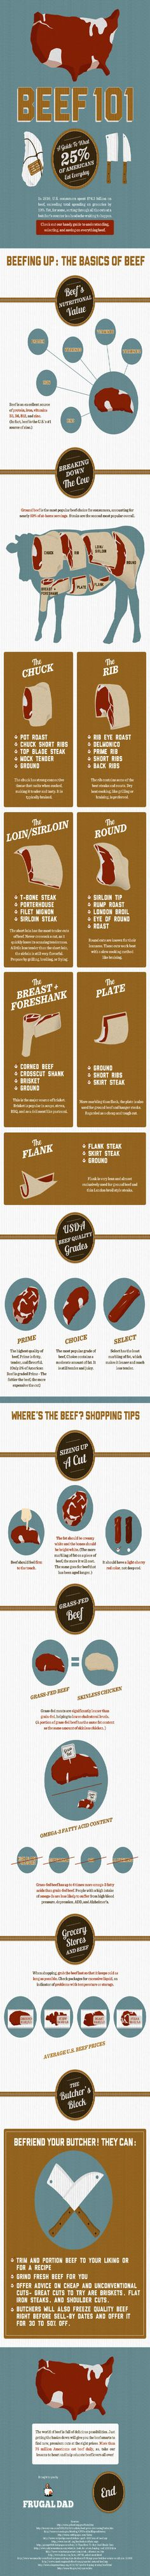 Beef 101: Every infographic you could possibly need to learn more about selecting, buying, and cooking beef